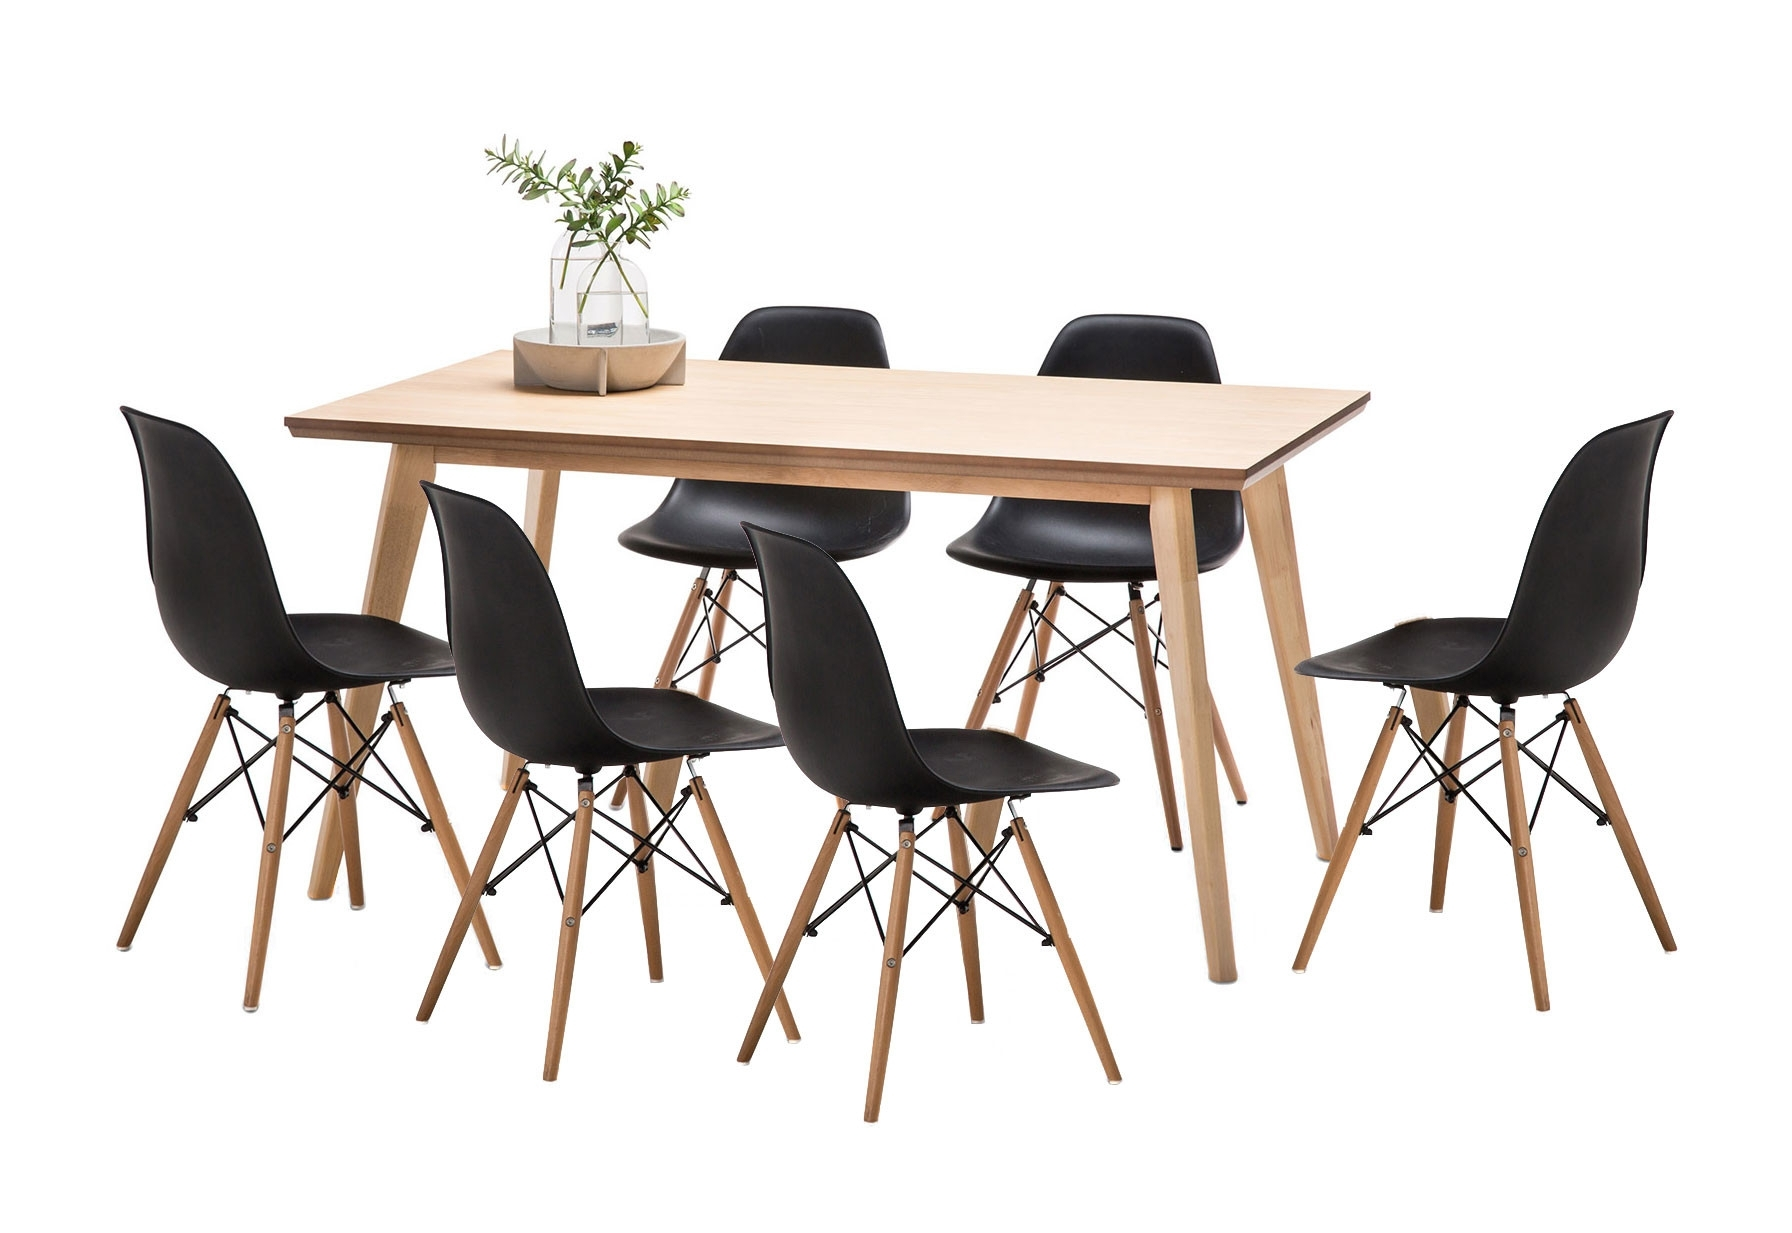 Wyatt Dining Table Set With 6 Replica Eames Chairs | Temple & Webster Inside Recent Wyatt Dining Tables (Image 18 of 20)